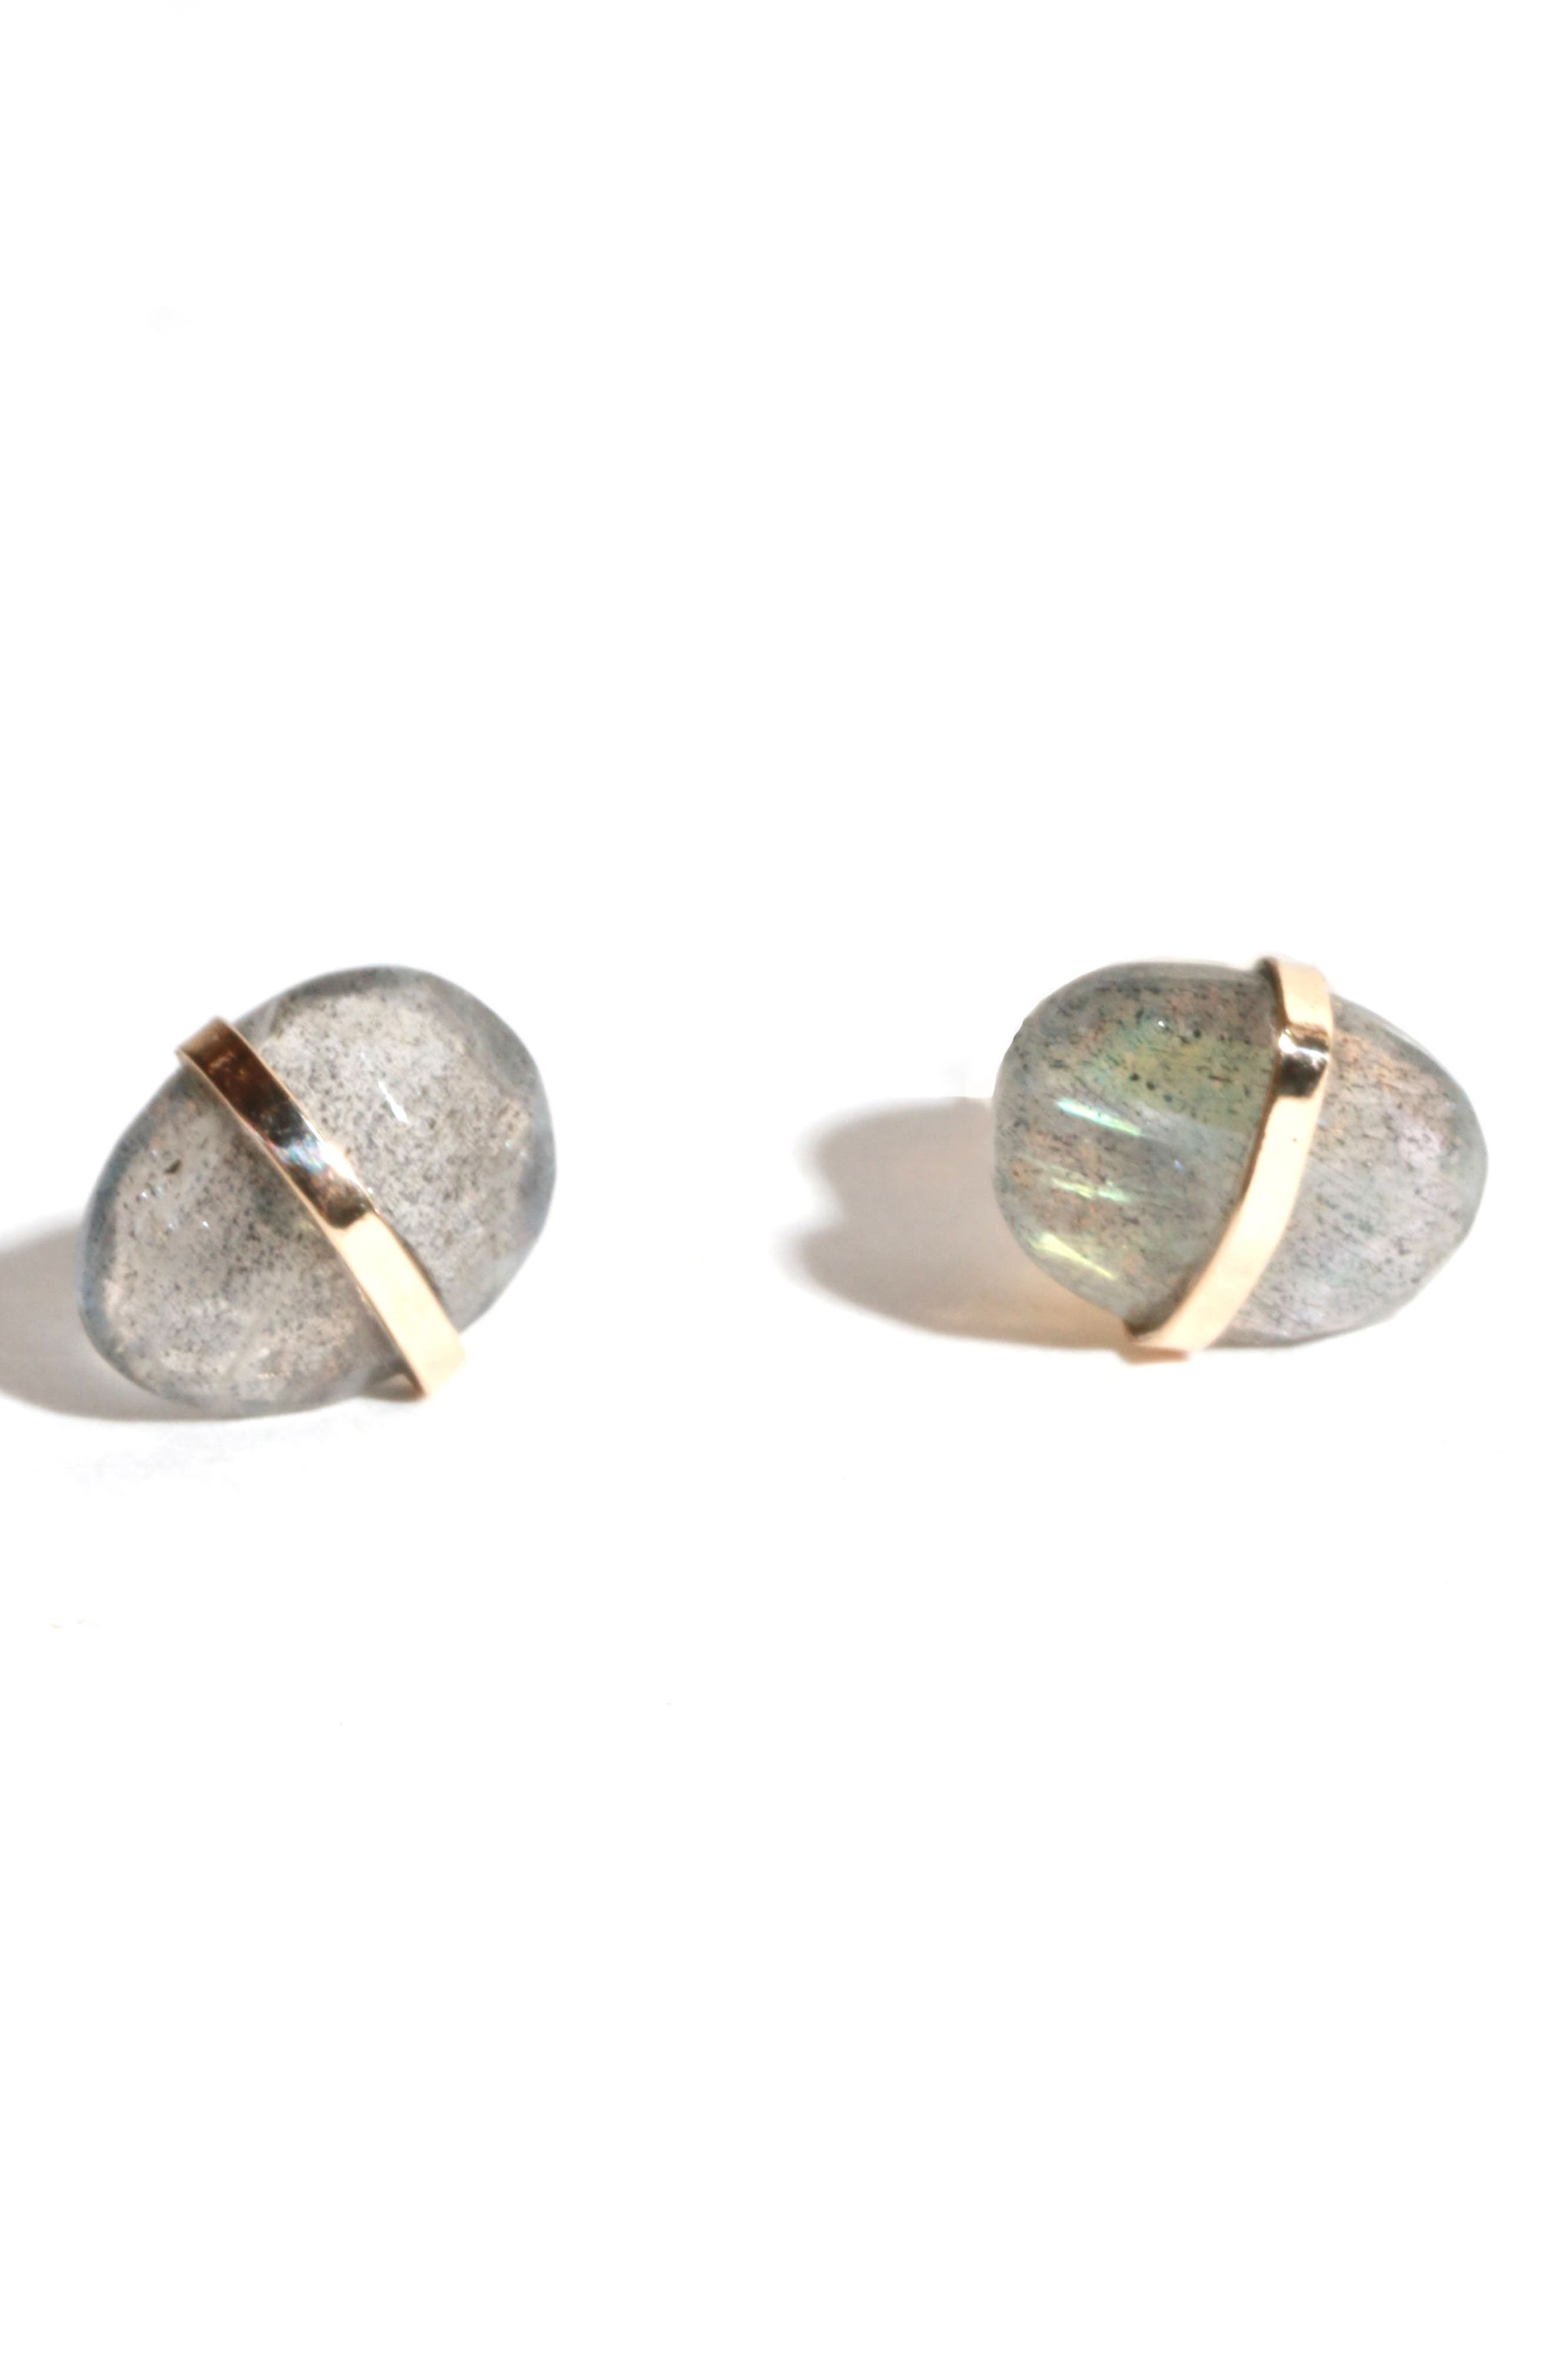 Wrapped Labradorite Stud Earrings,                             Main thumbnail 1, color,                             YELLOW GOLD